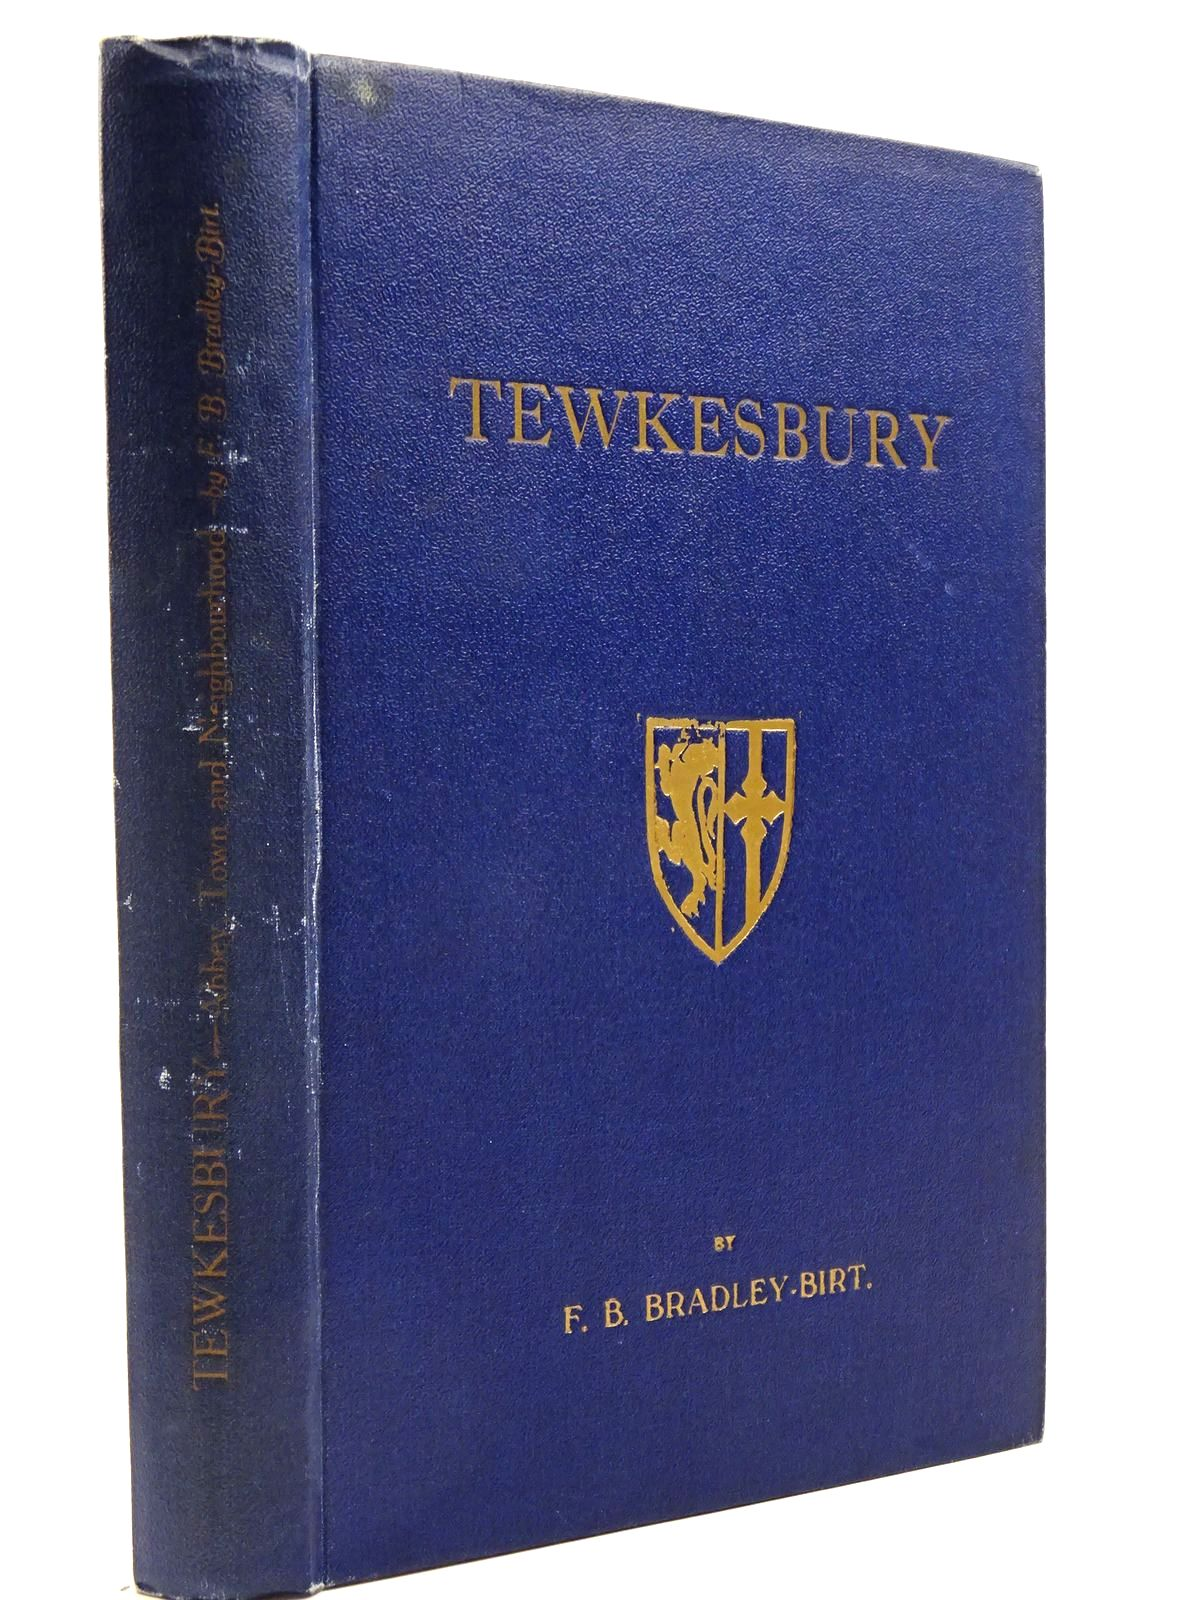 Photo of TEWKESBURY written by Bradley-Birt, F.B. illustrated by Home, Percy published by Phillips & Probert Ltd. (STOCK CODE: 2130894)  for sale by Stella & Rose's Books